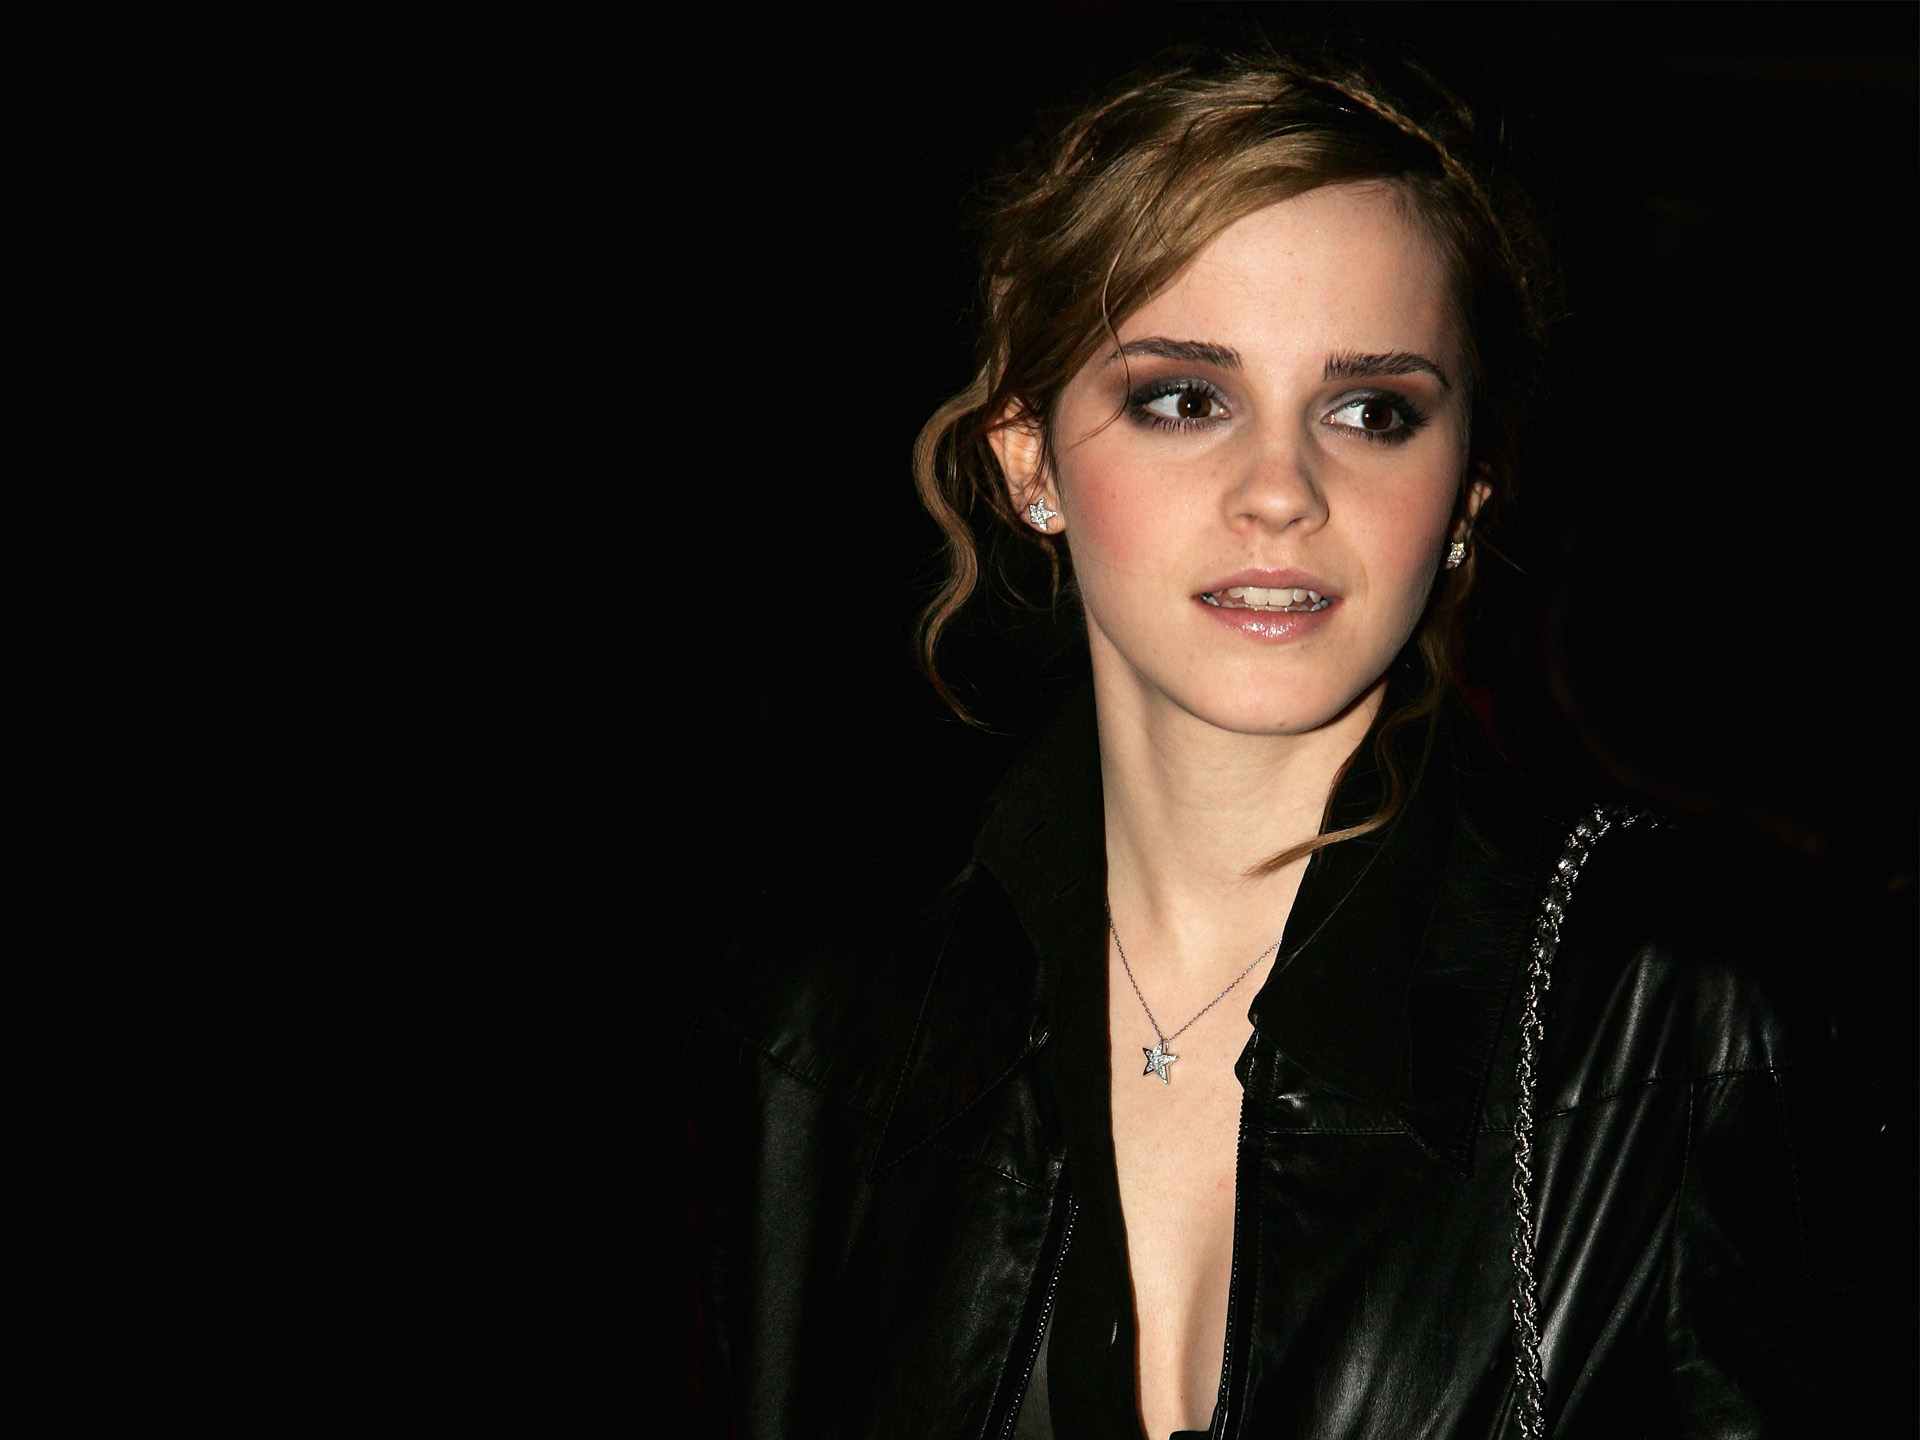 Emma Watson in Black Coat